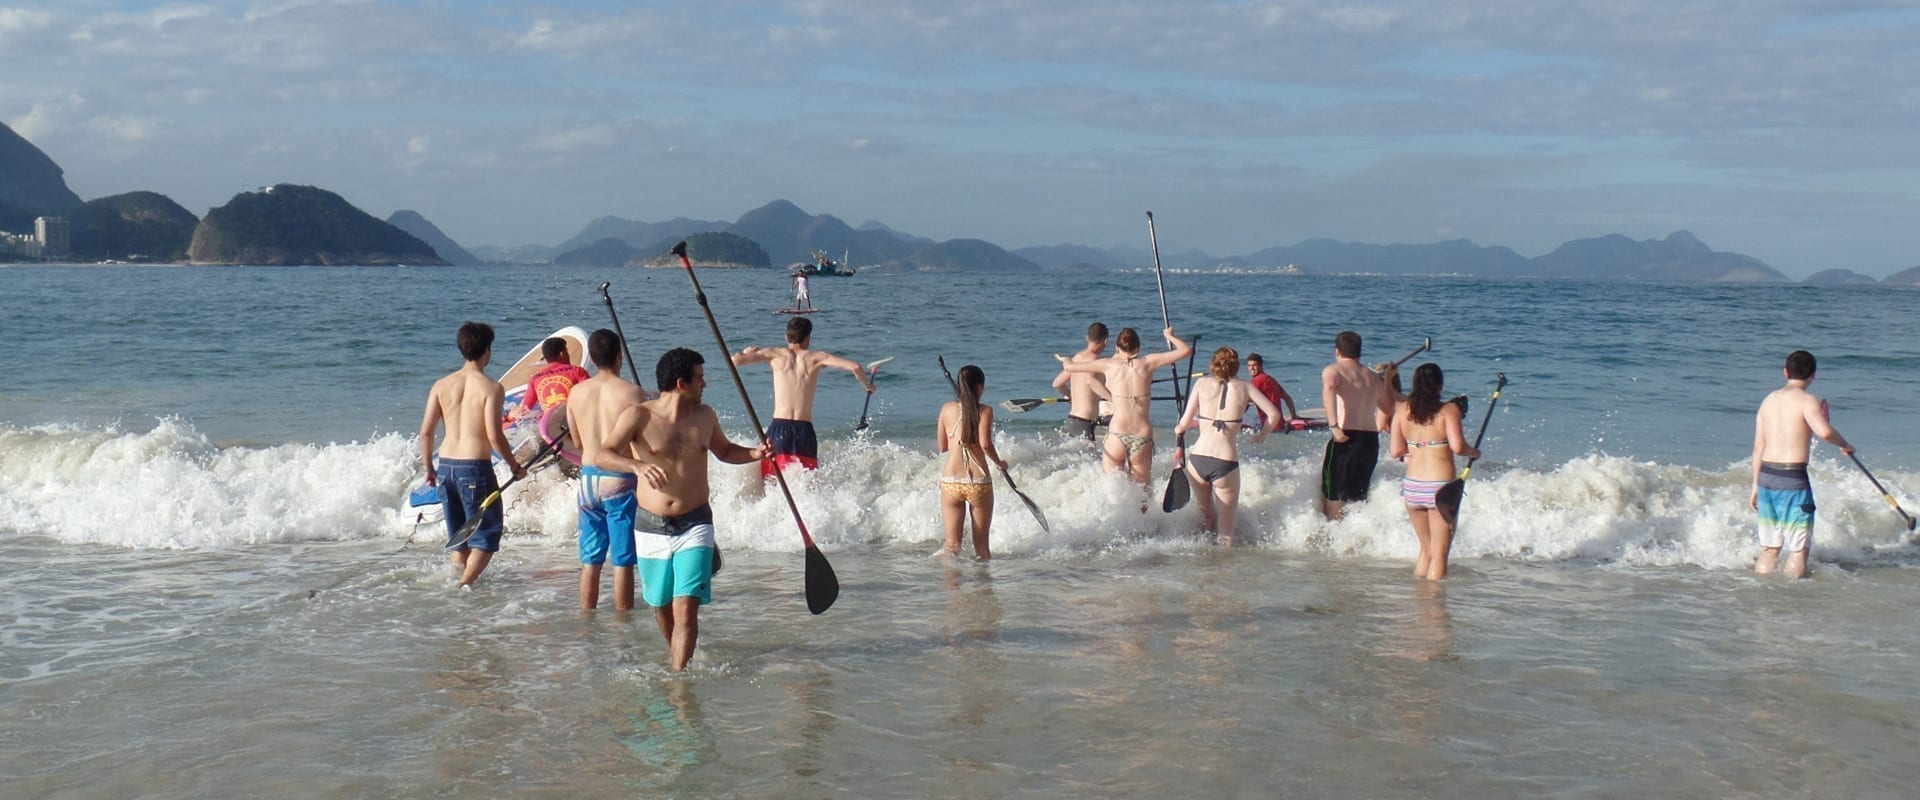 Stand up paddle activities in Rio de Janeiro.